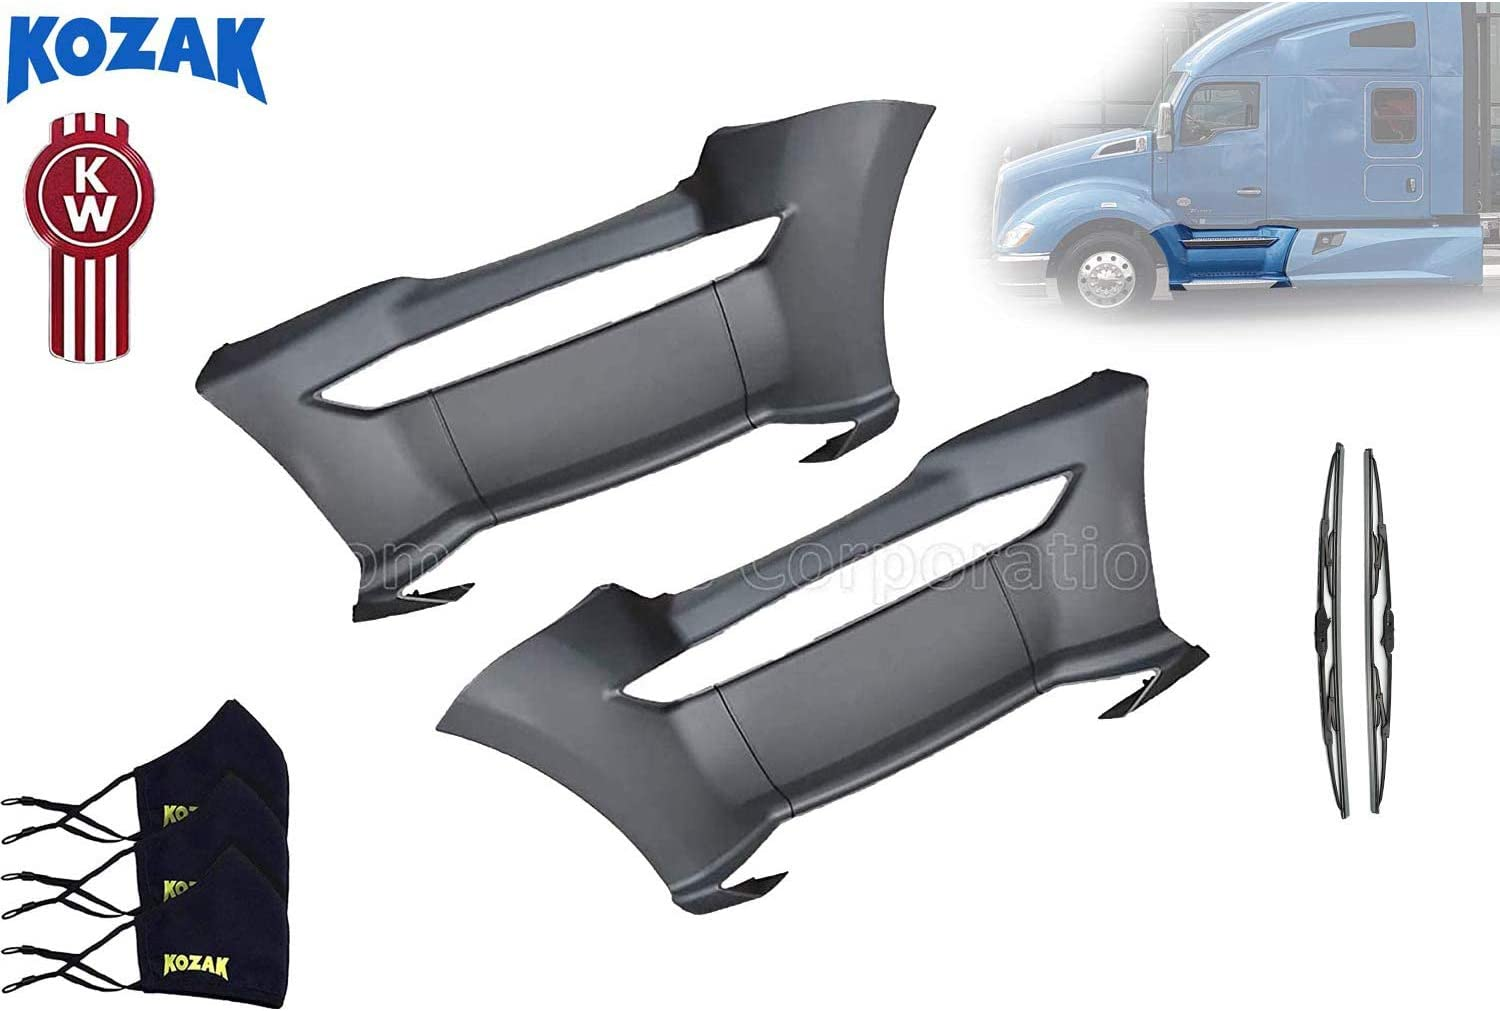 Kozak Max 43% OFF Replacement Front Step Fairing Passenger L Right Quality inspection and Panel